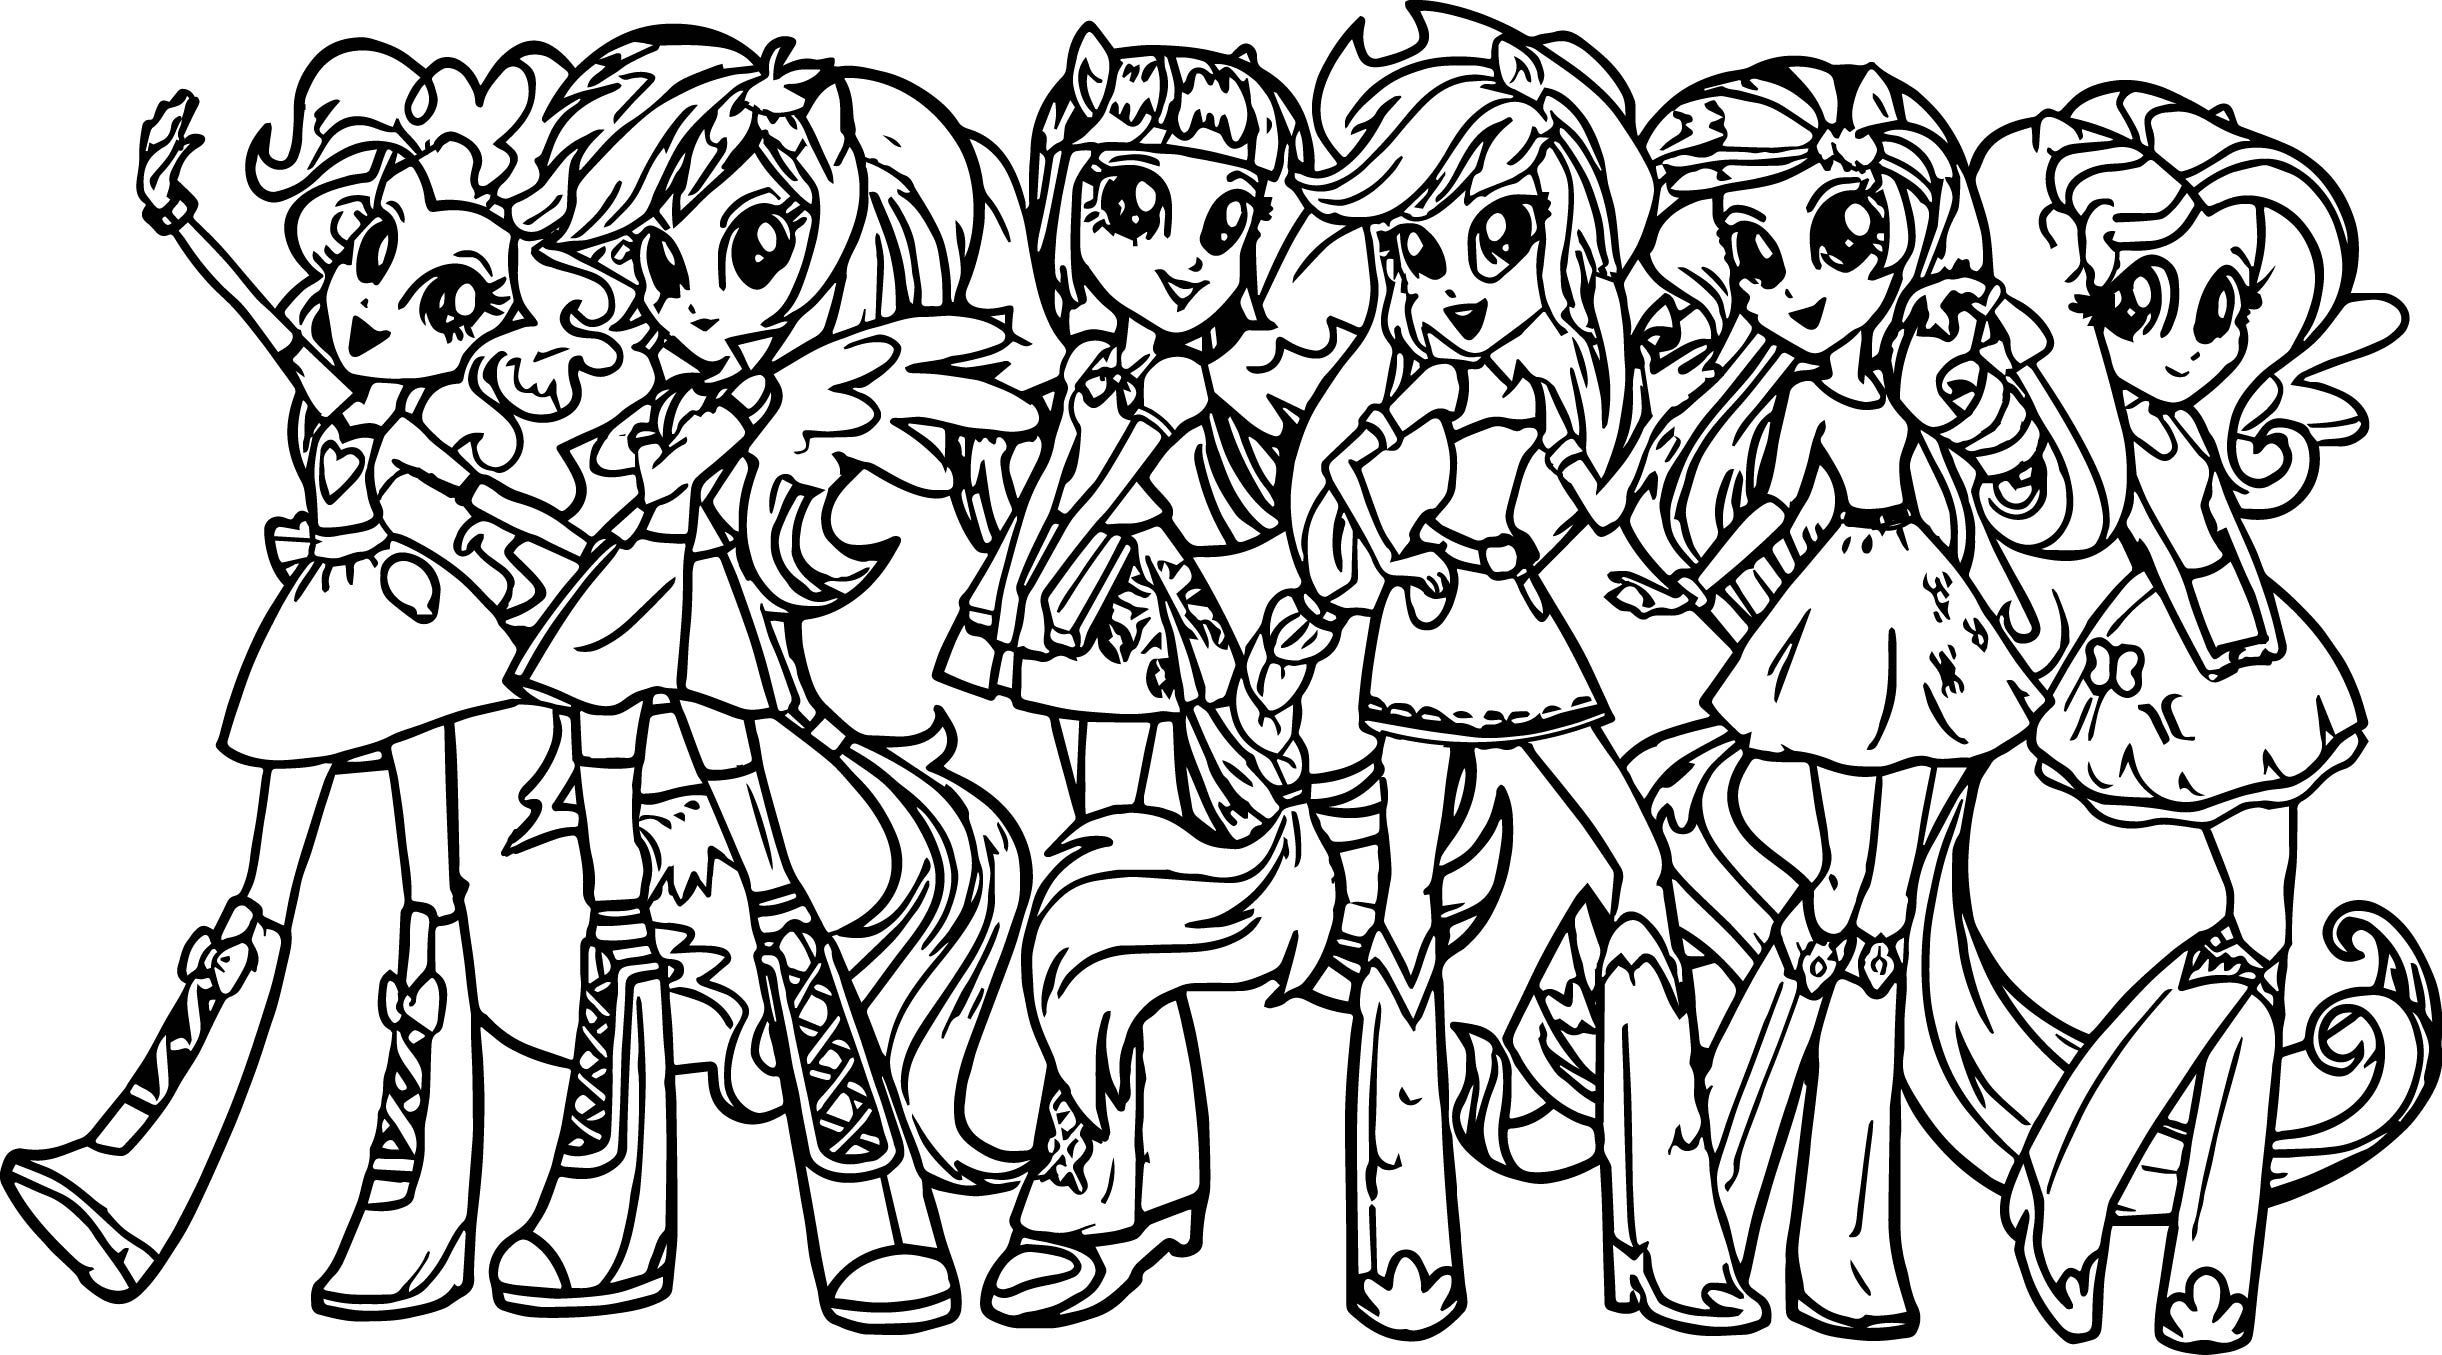 My Little Pony Girls Coloring Page My Little Pony Coloring People Coloring Pages My Lit In 2021 My Little Pony Coloring Coloring Pages For Girls My Little Pony Drawing [ 1355 x 2442 Pixel ]